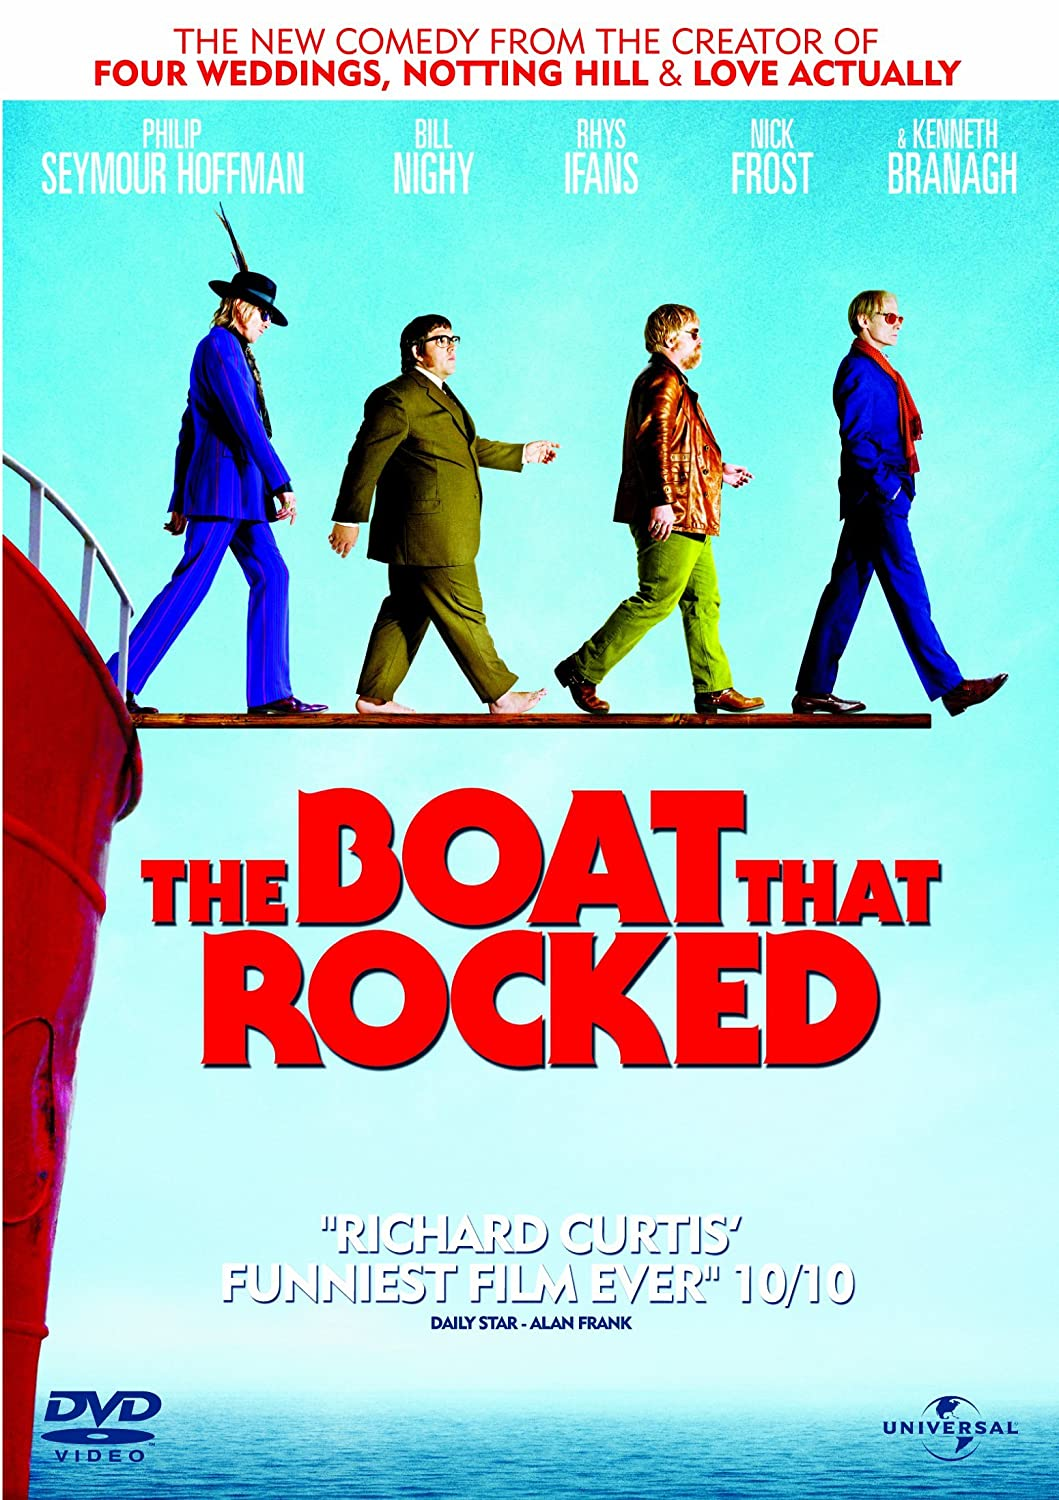 Double wedding soundtrack - The Boat That Rocked Dvd 2009